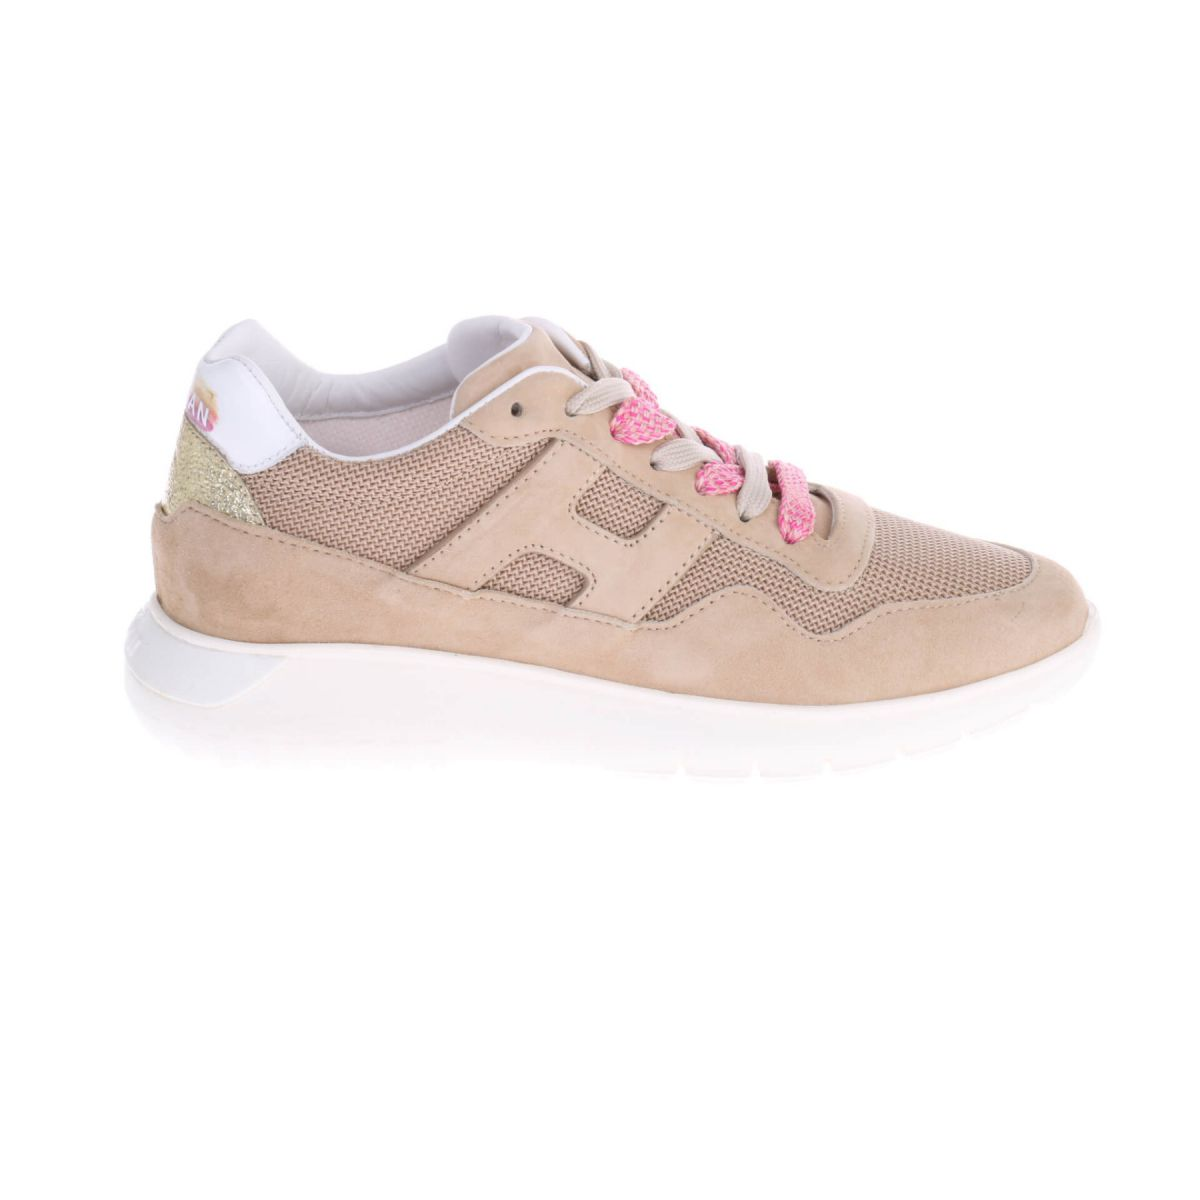 Hogan H371 Interactive Allogo Sneakers Beige